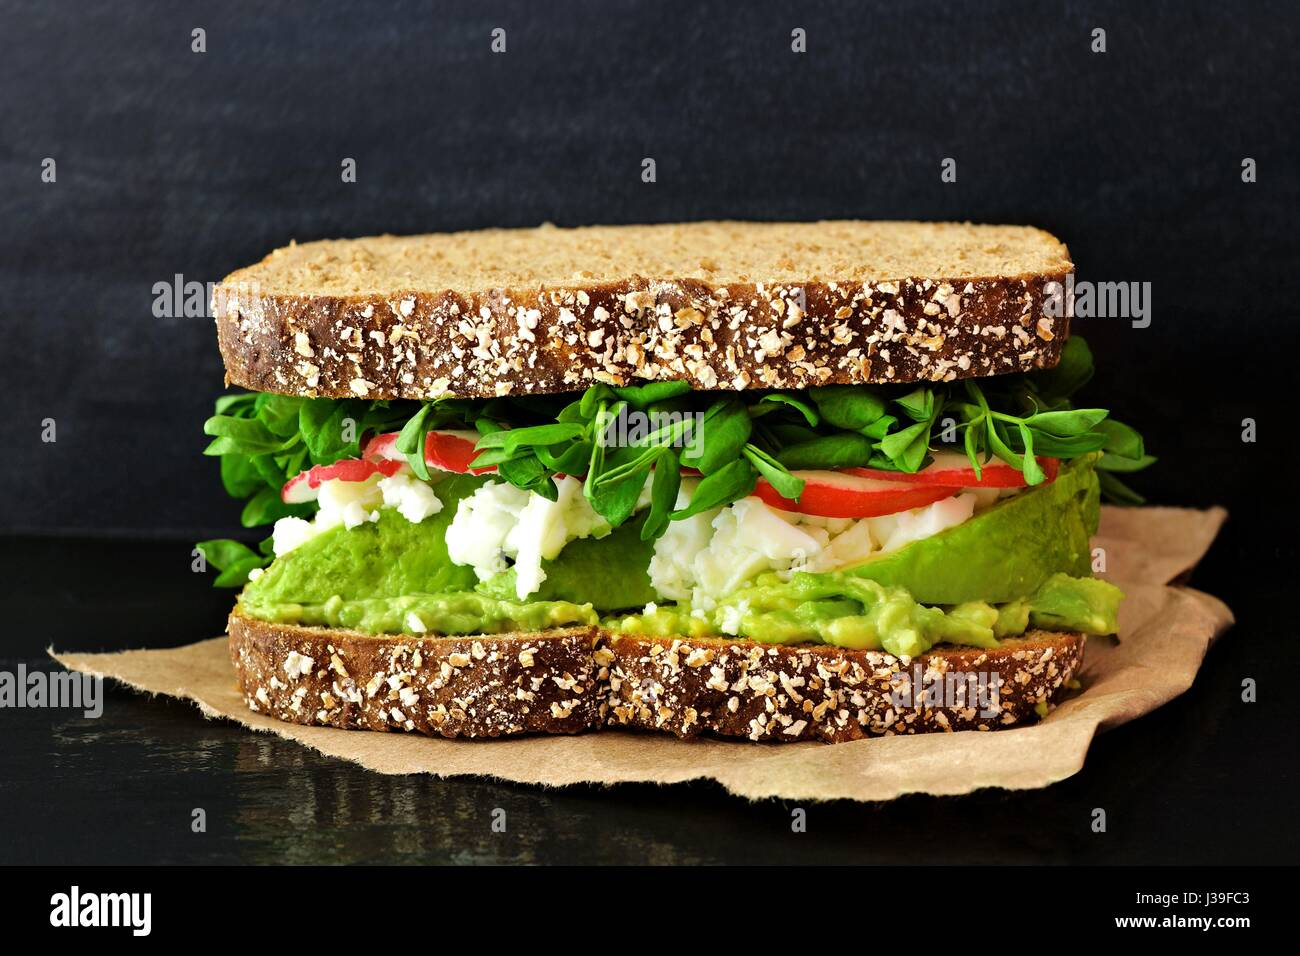 Superfood sandwich with avocado, egg whites, radish and pea shoots on whole grain bread against a slate background - Stock Image